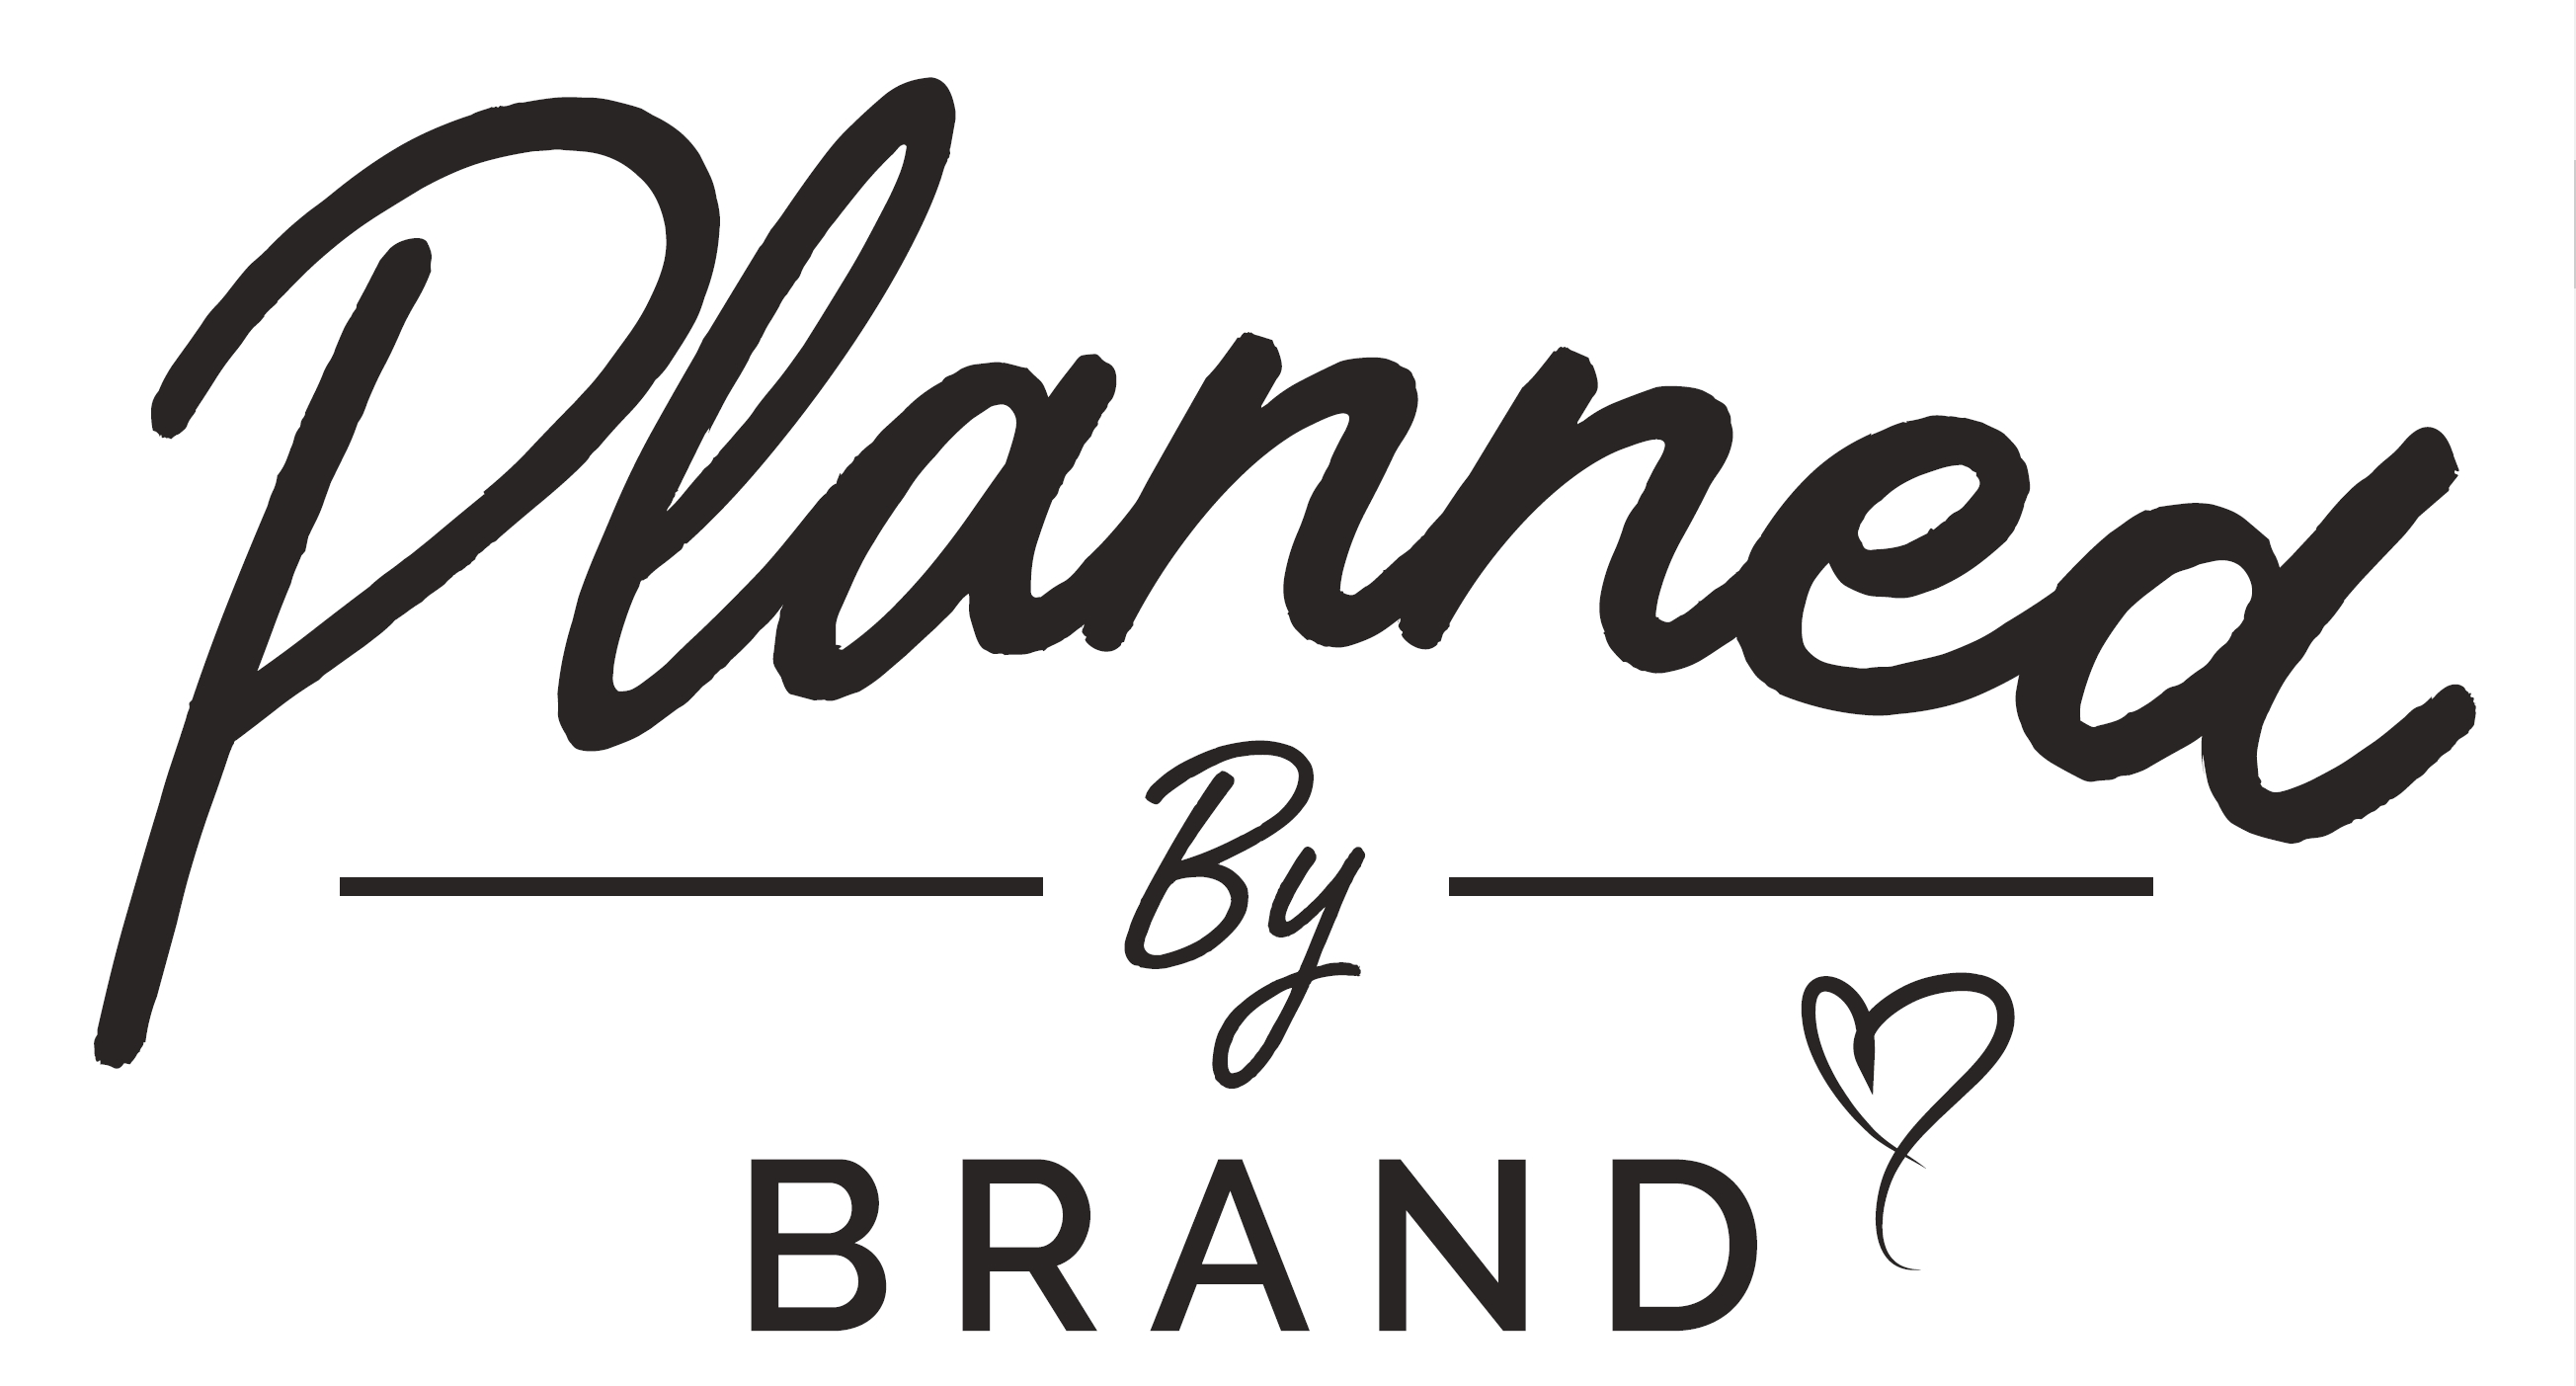 Planned By Brand